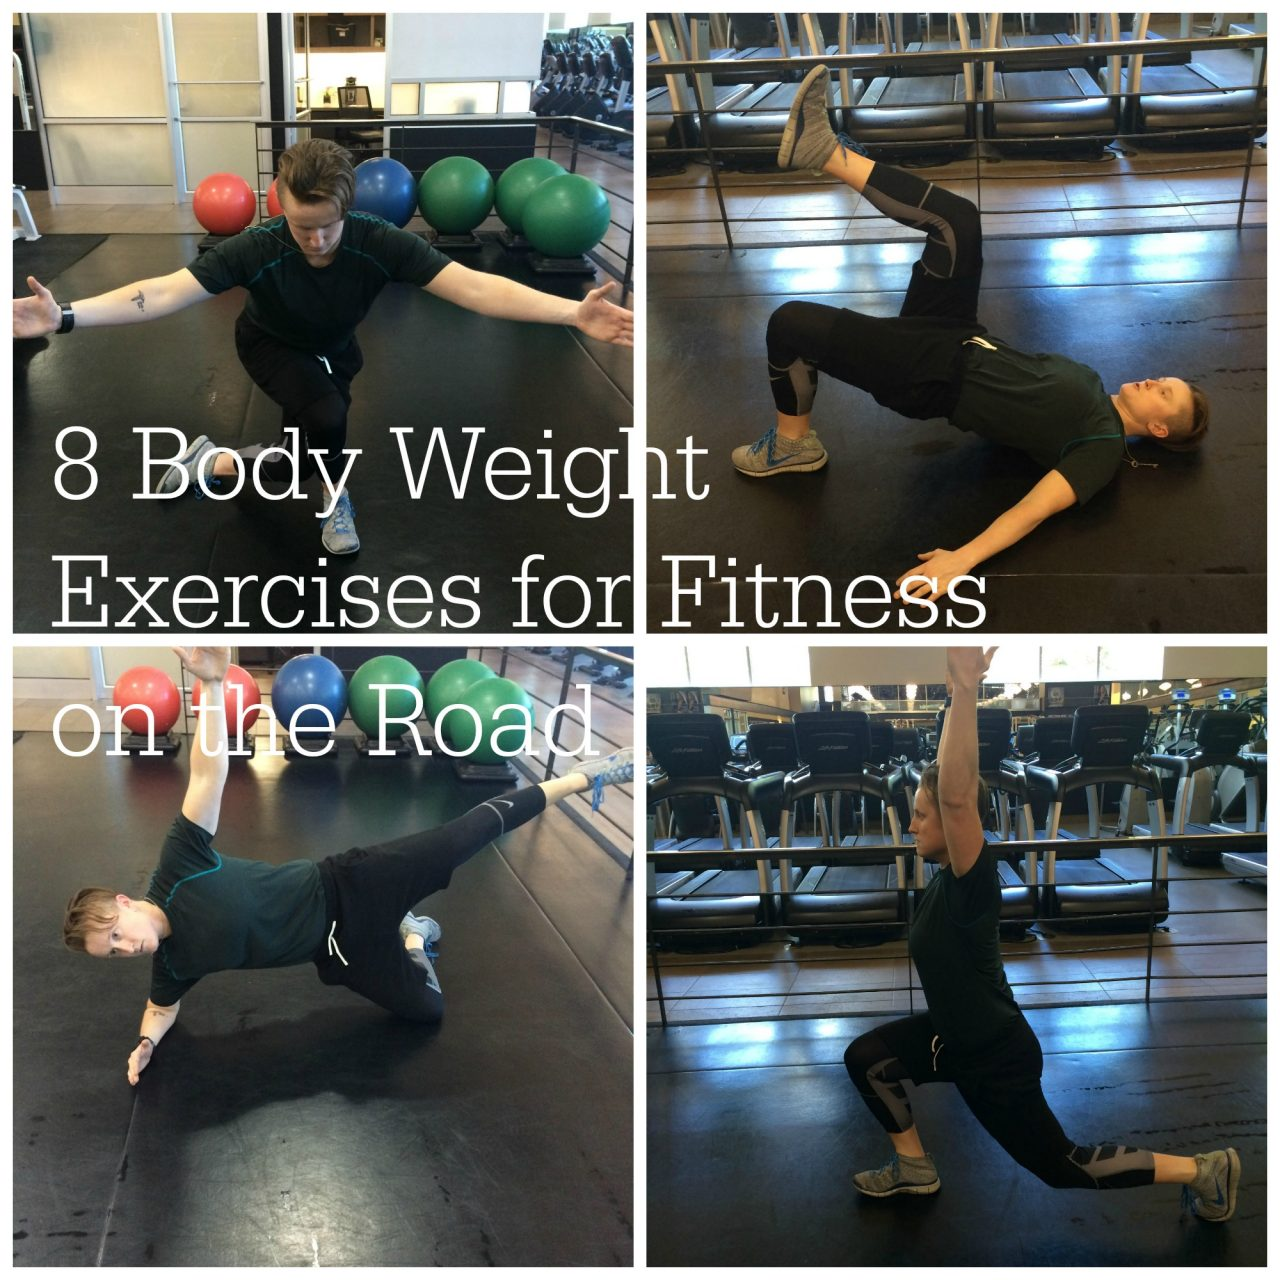 8 Body Weight Exercises for Fitness on the Road